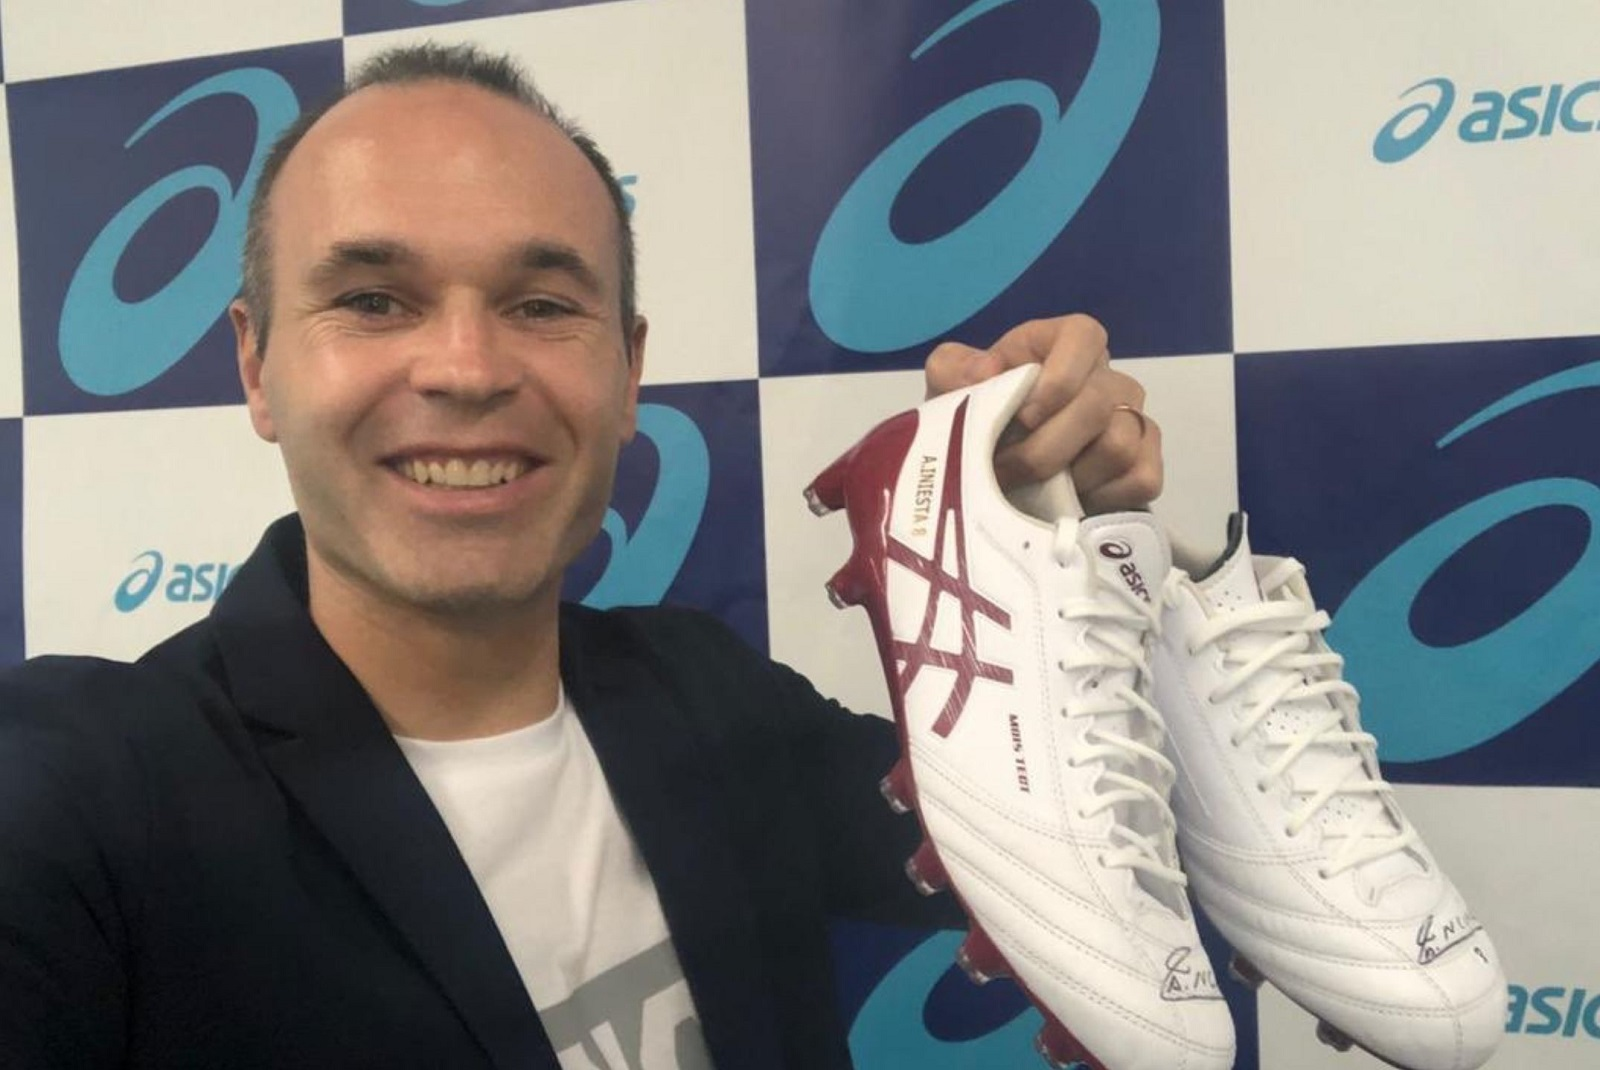 Iniesta Asics Boots   Soccer Cleats 101